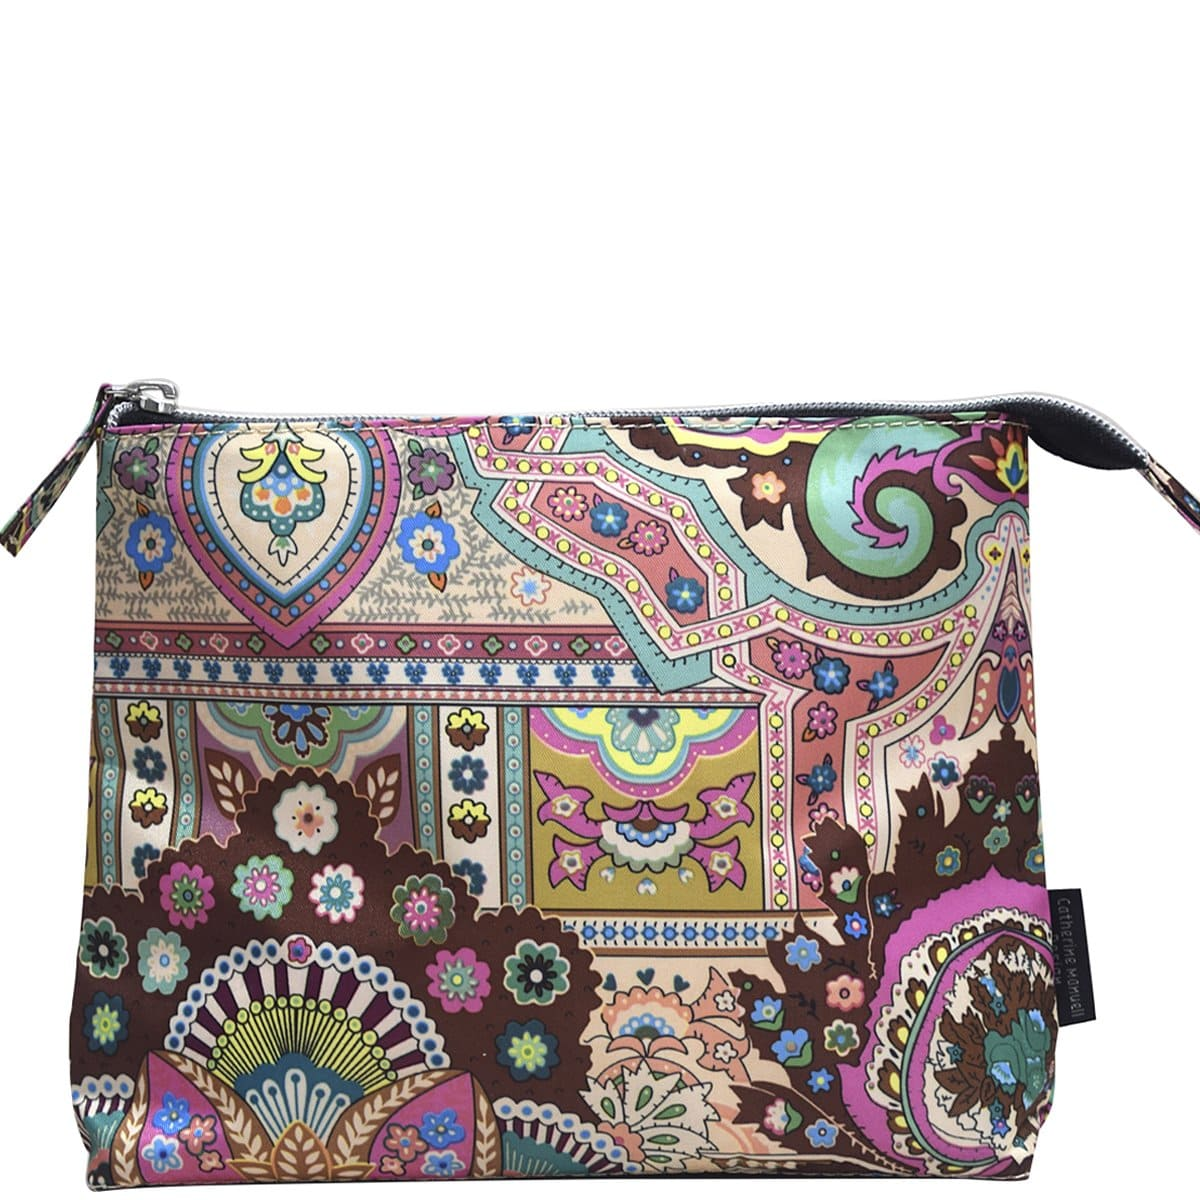 A-Line Toiletry - Large - Pink Green Blue Paisley